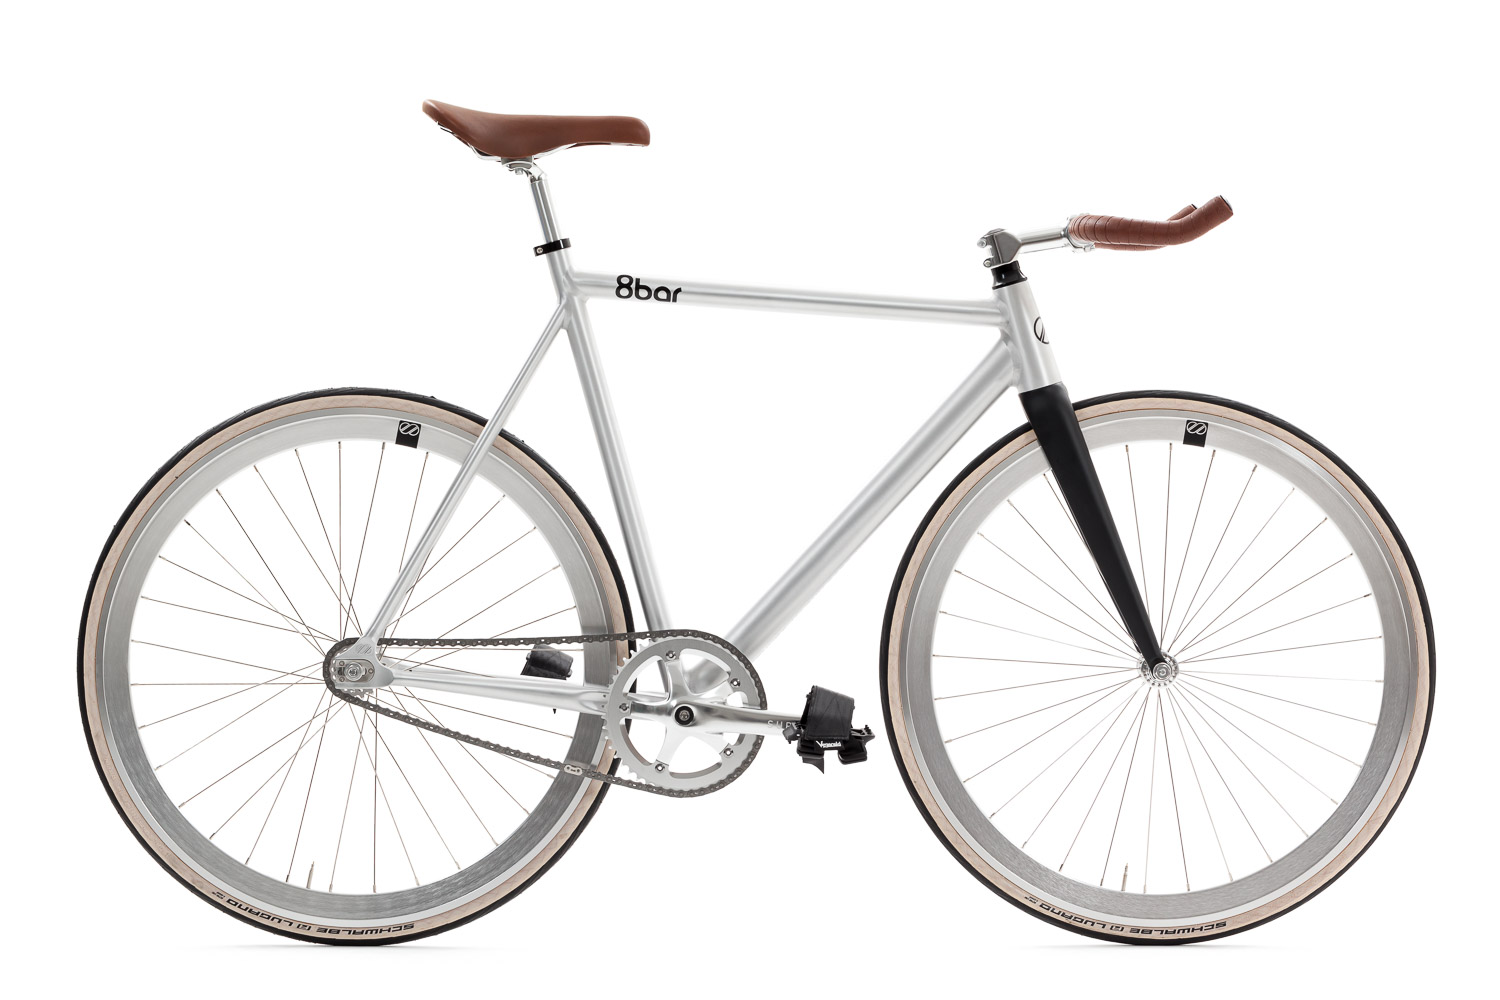 8bar-krzberg-comp-raw-bullhorn-fixie-fixed-gear-1